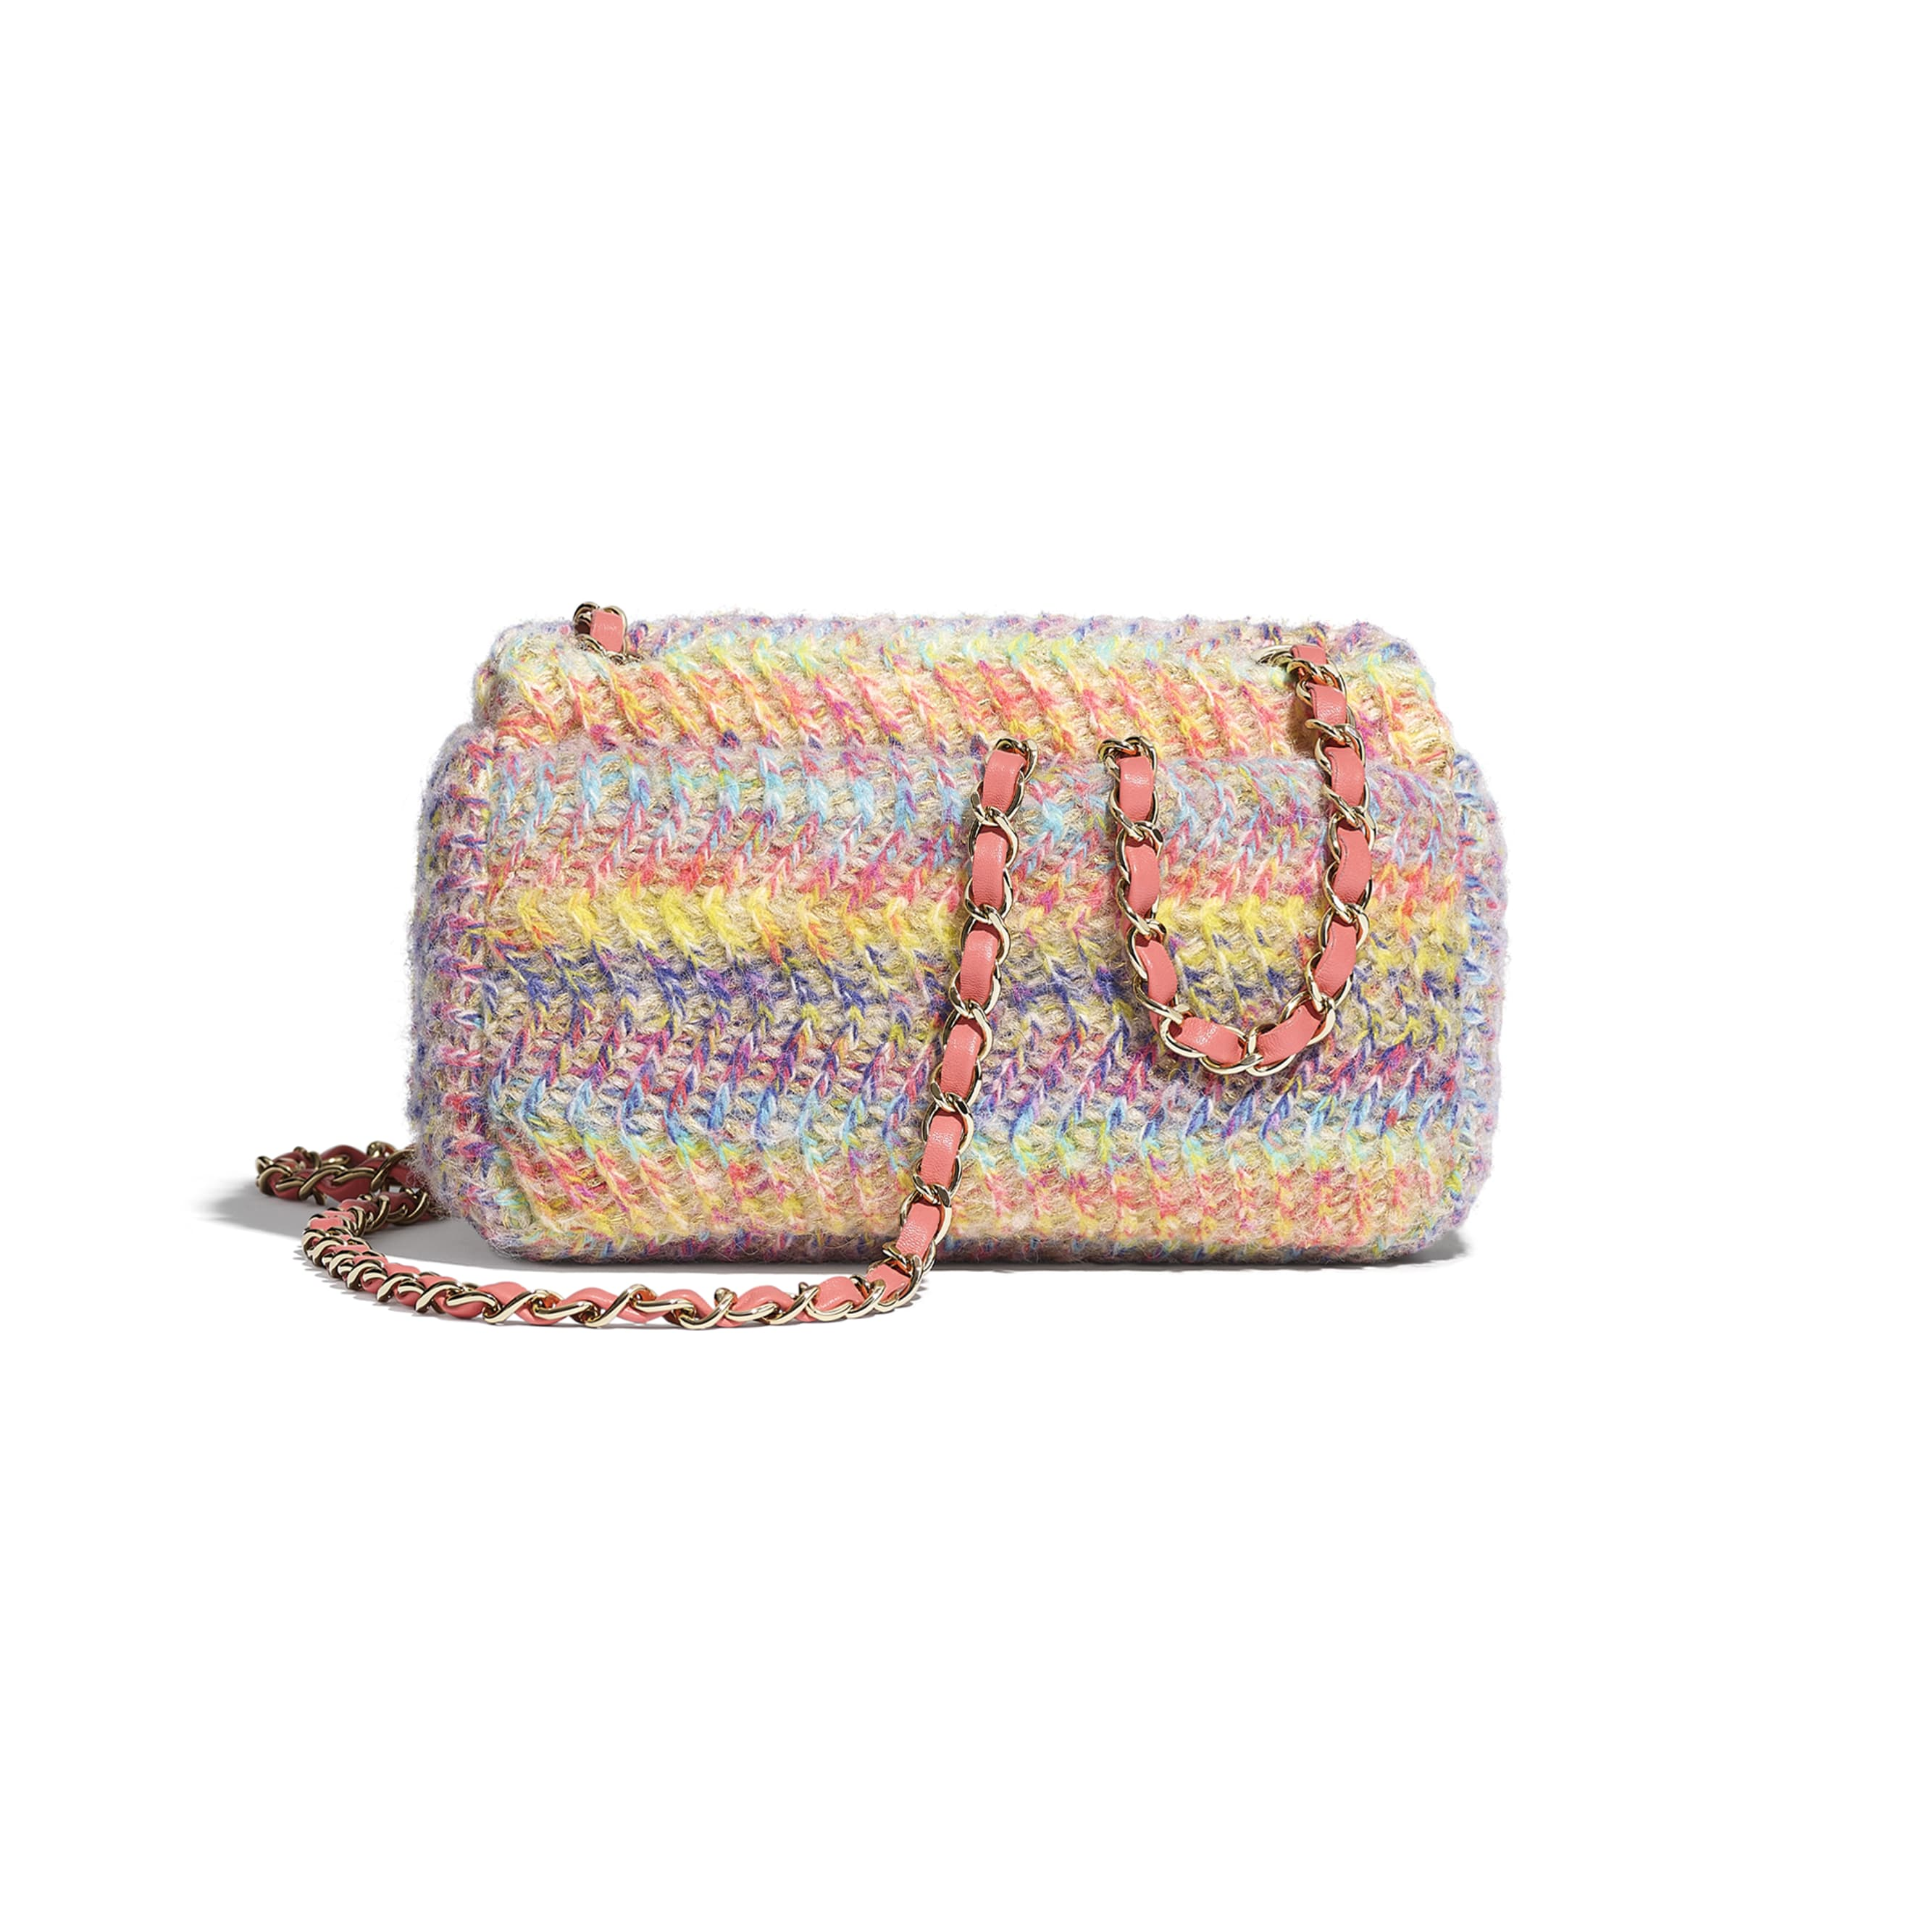 Small Flap Bag - Multicolour - Knit & Gold-Tone Metal - CHANEL - Alternative view - see standard sized version